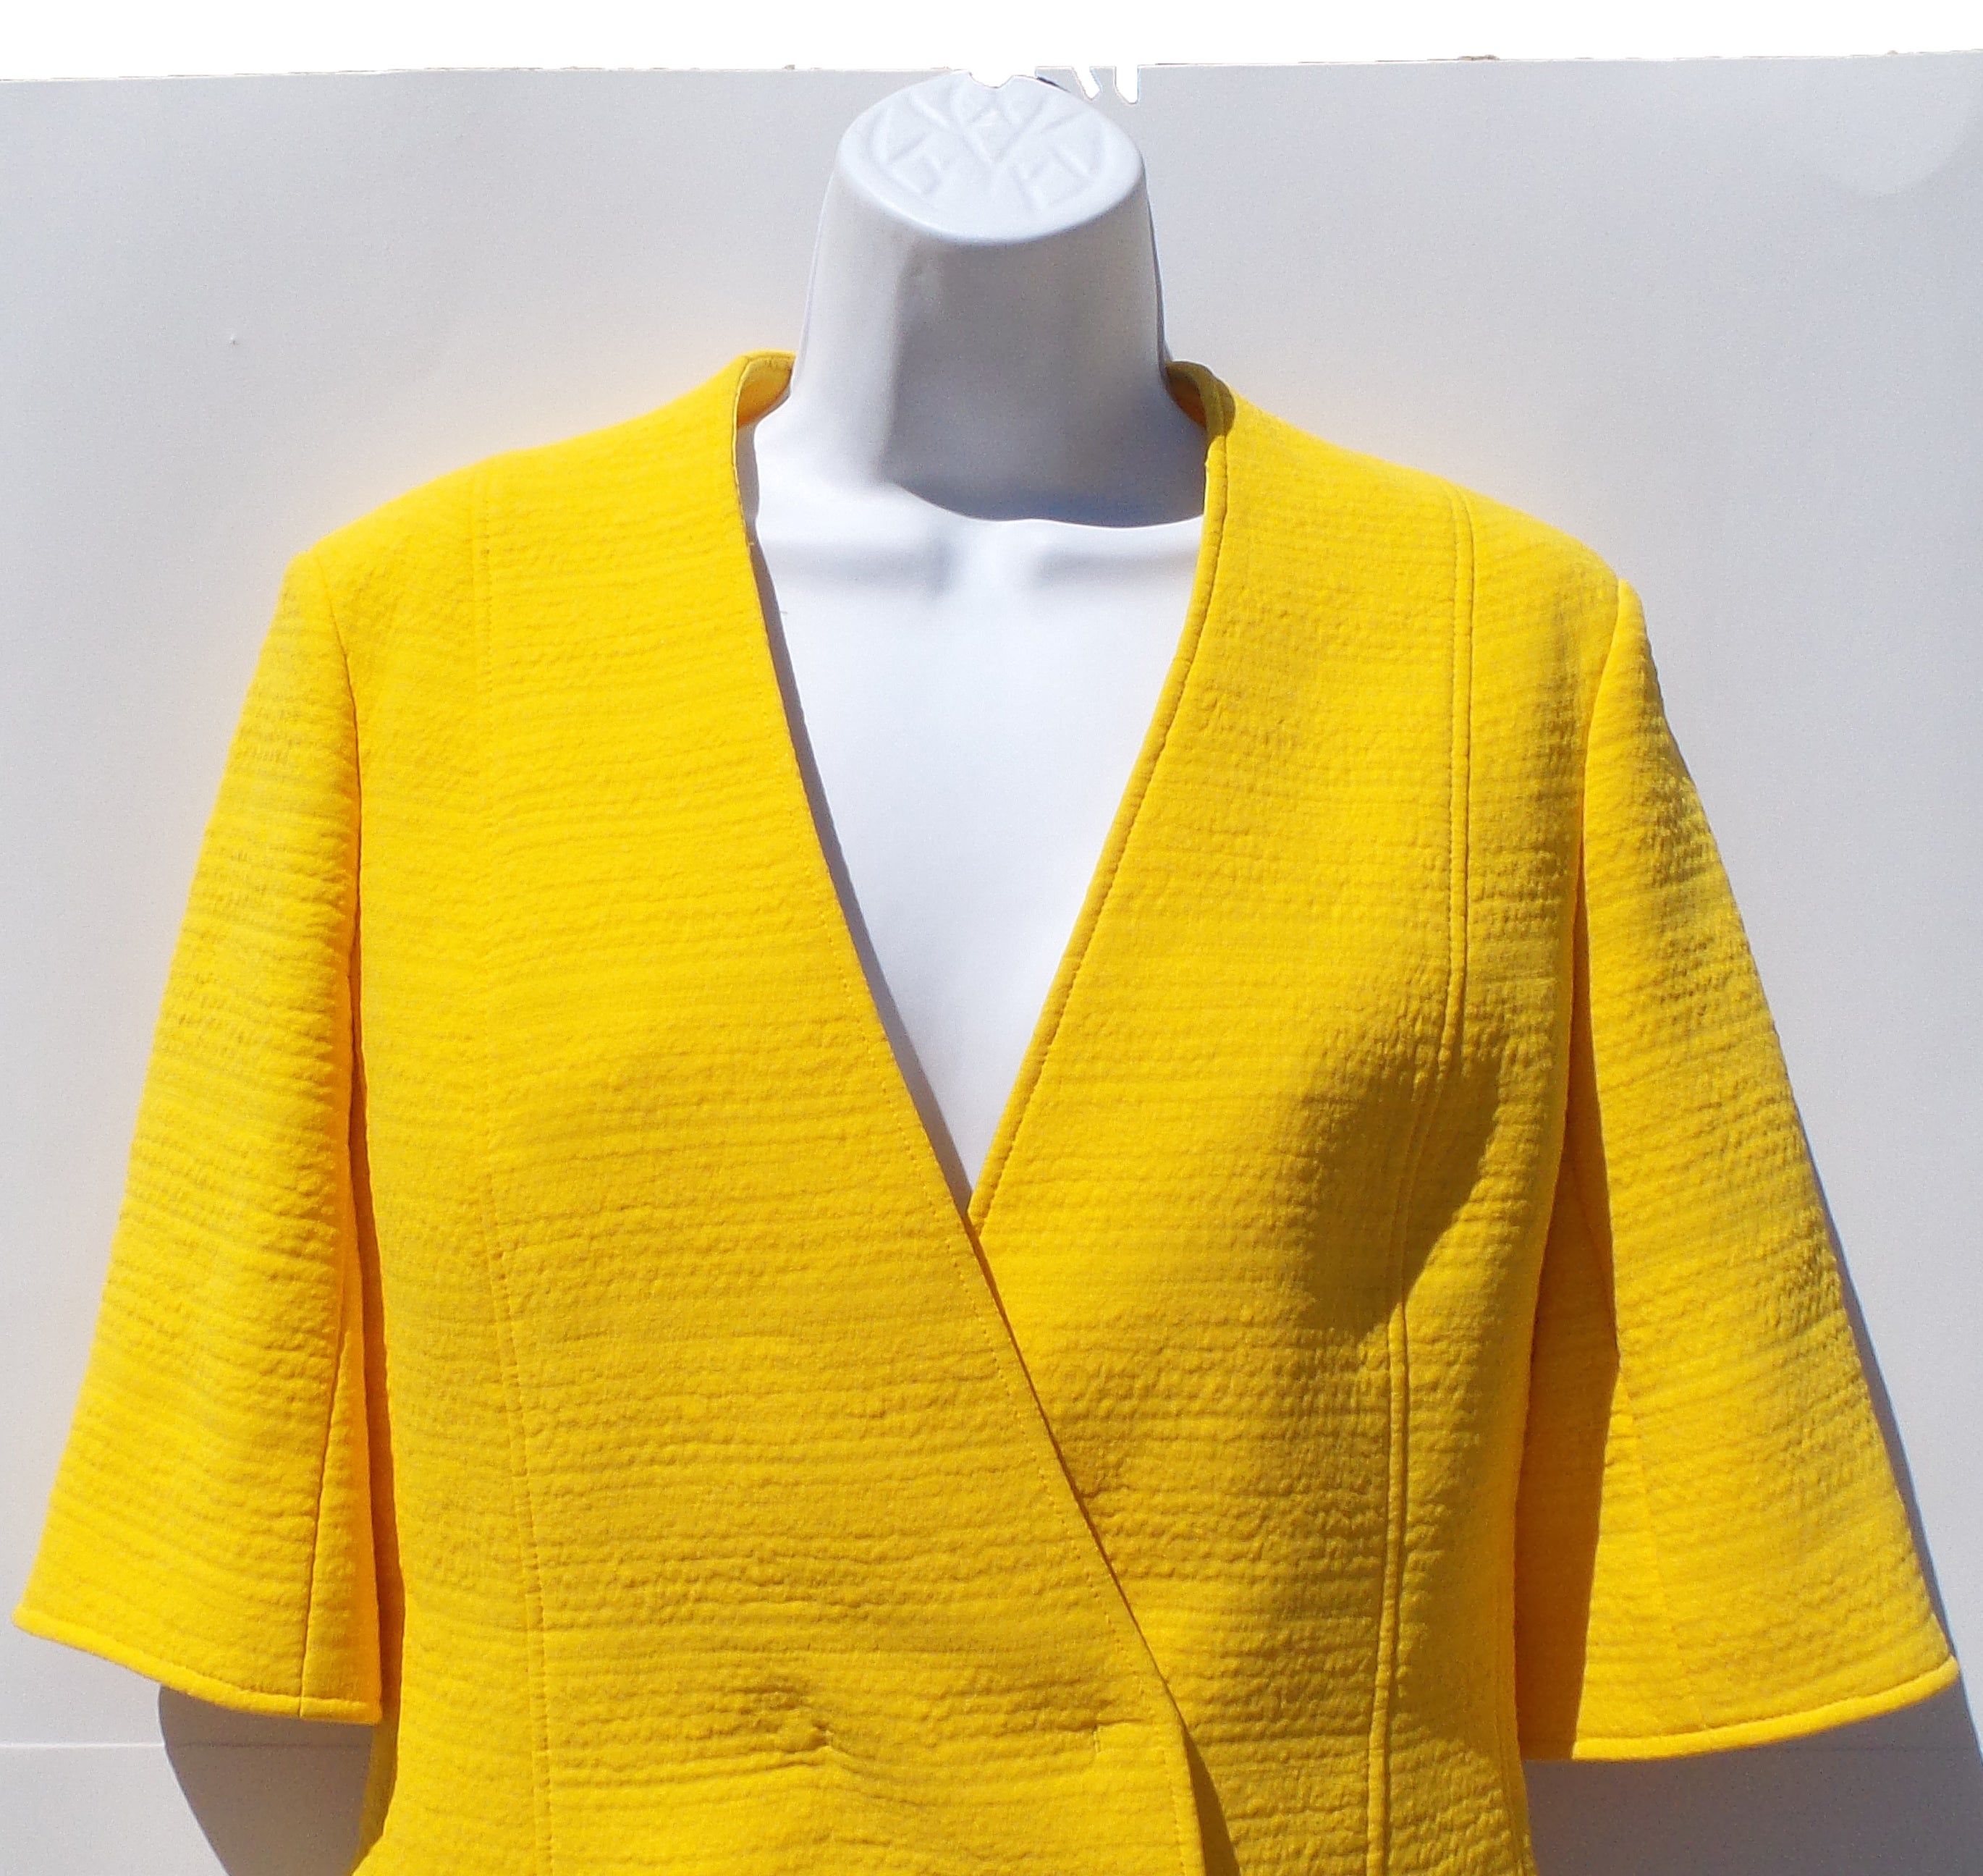 AKRIS Ollon Yellow Cotton Blend V Neck Short Sleeve Blazer Jacket 6 FR38 $2990